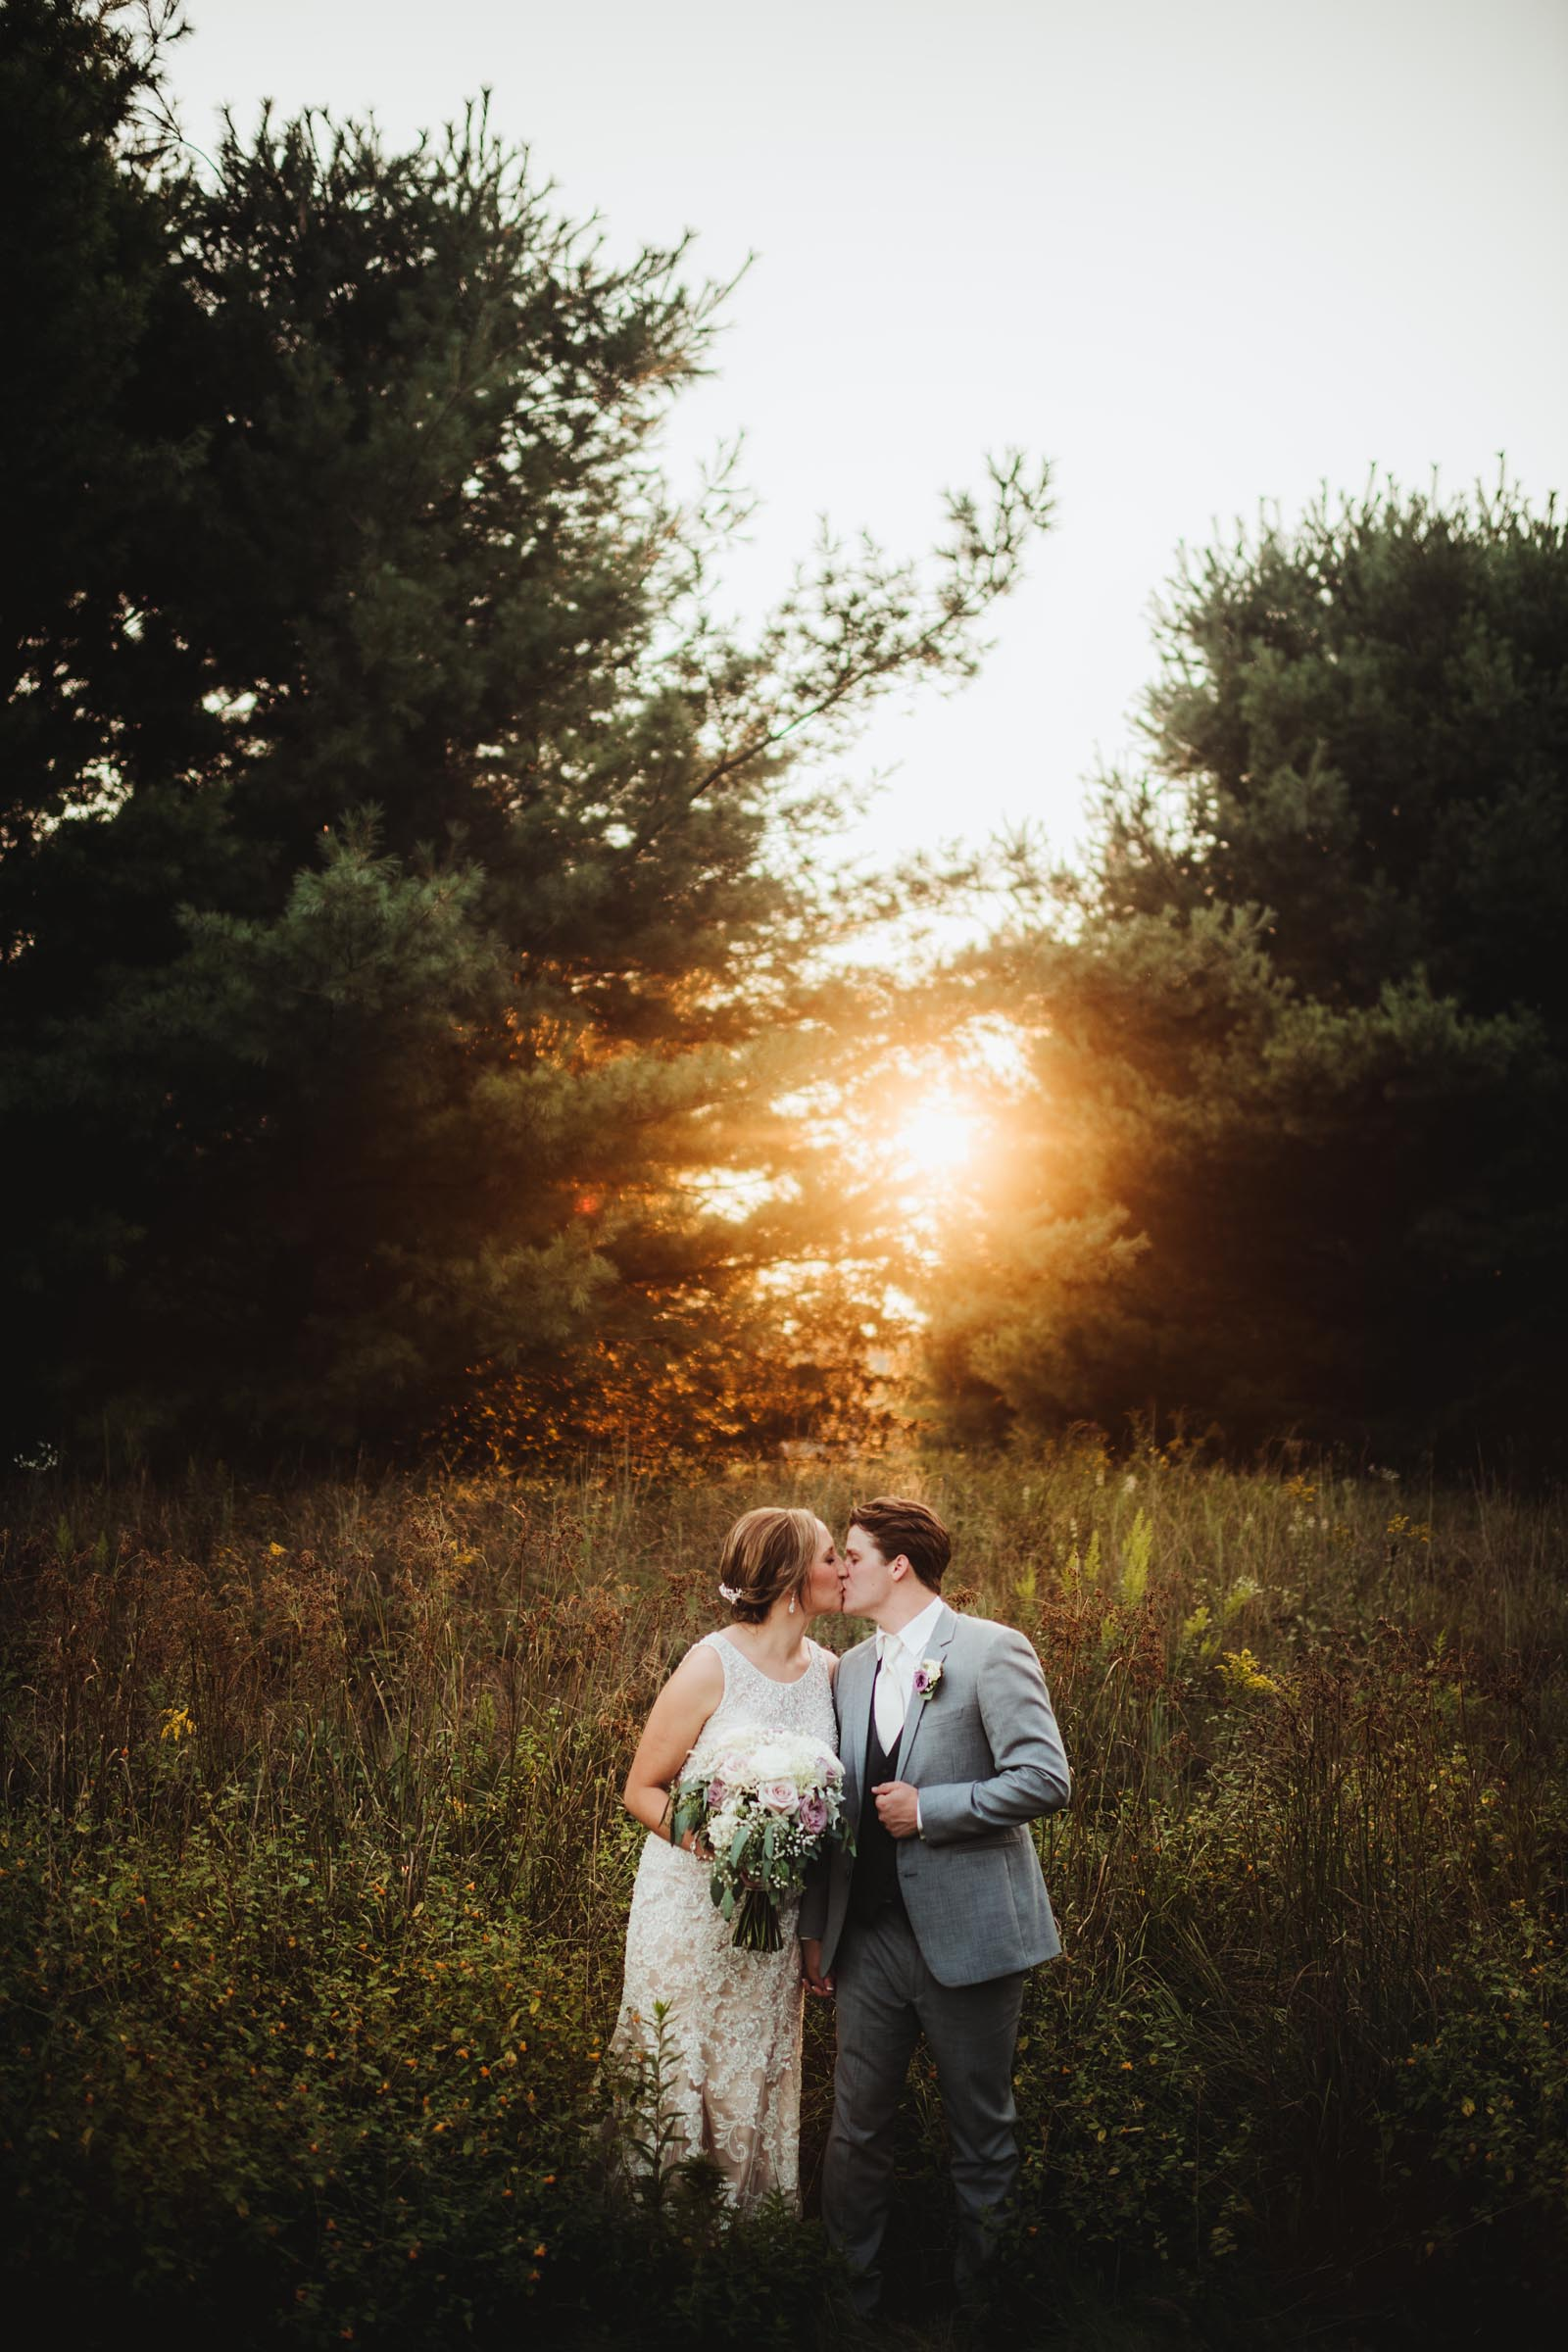 Bride Groom Kissing in Field at Sunset